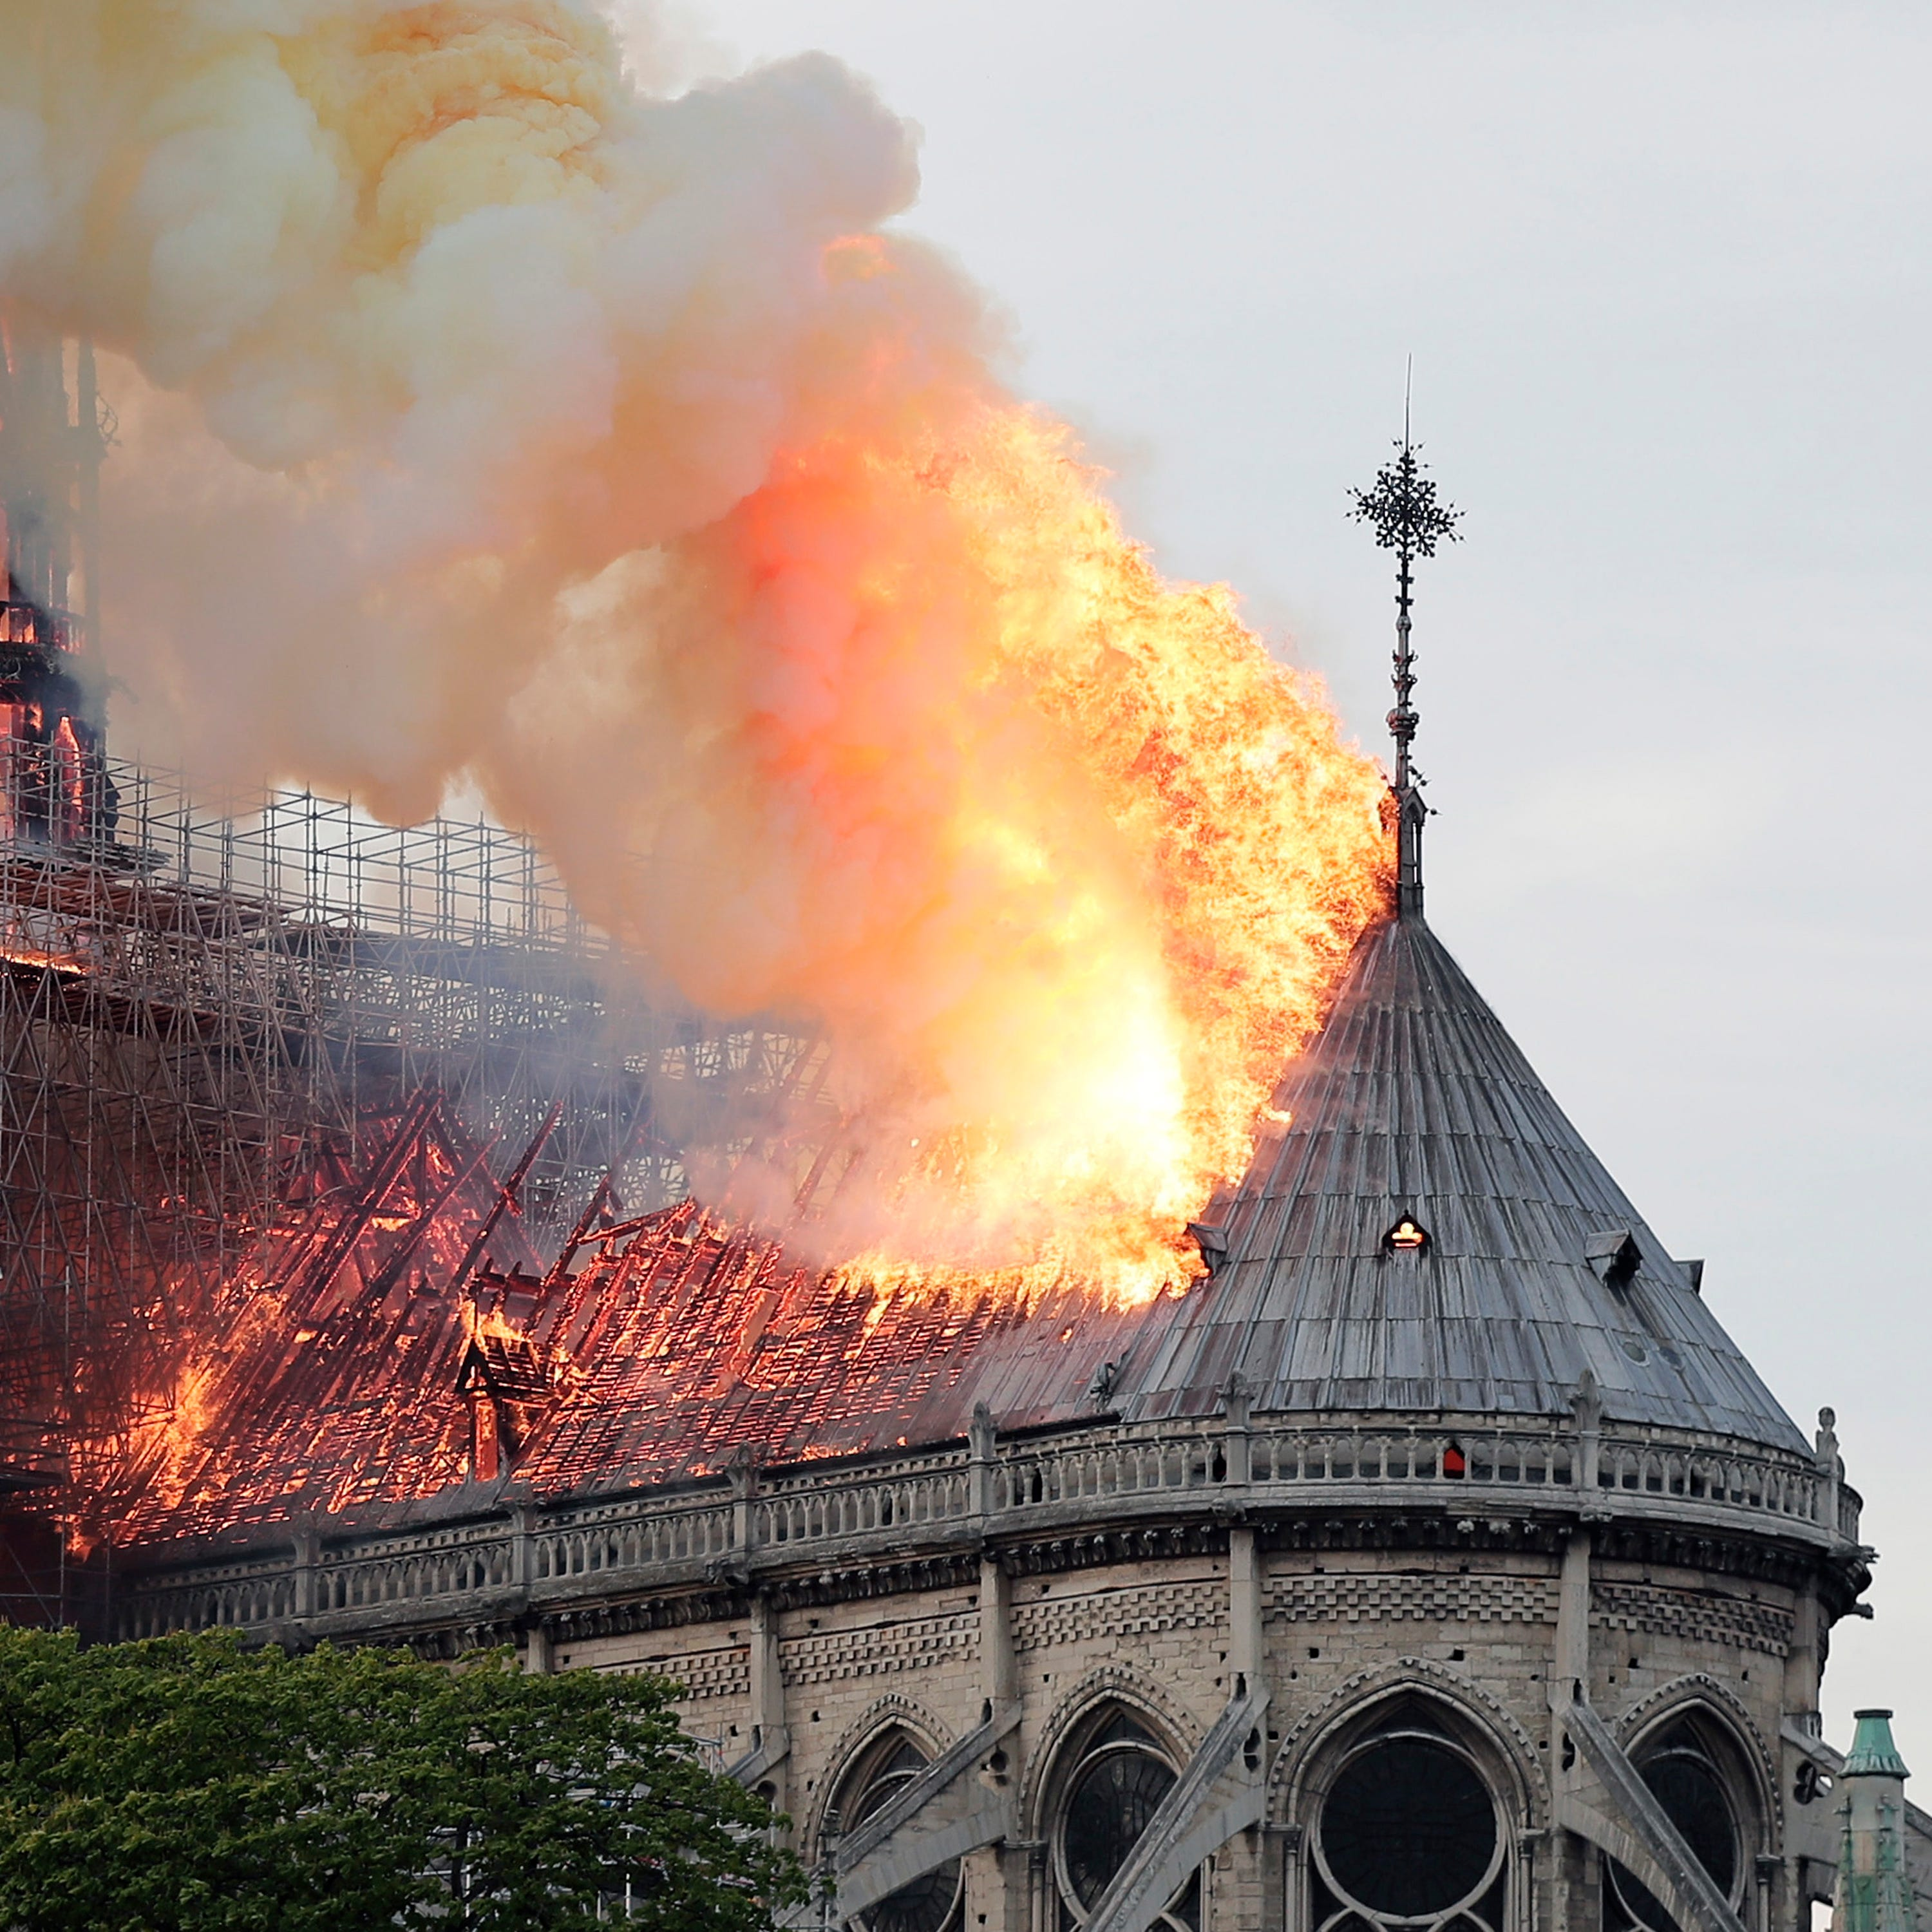 Notre Dame fire: University of Notre Dame donating $100,000 to repair Paris cathedral